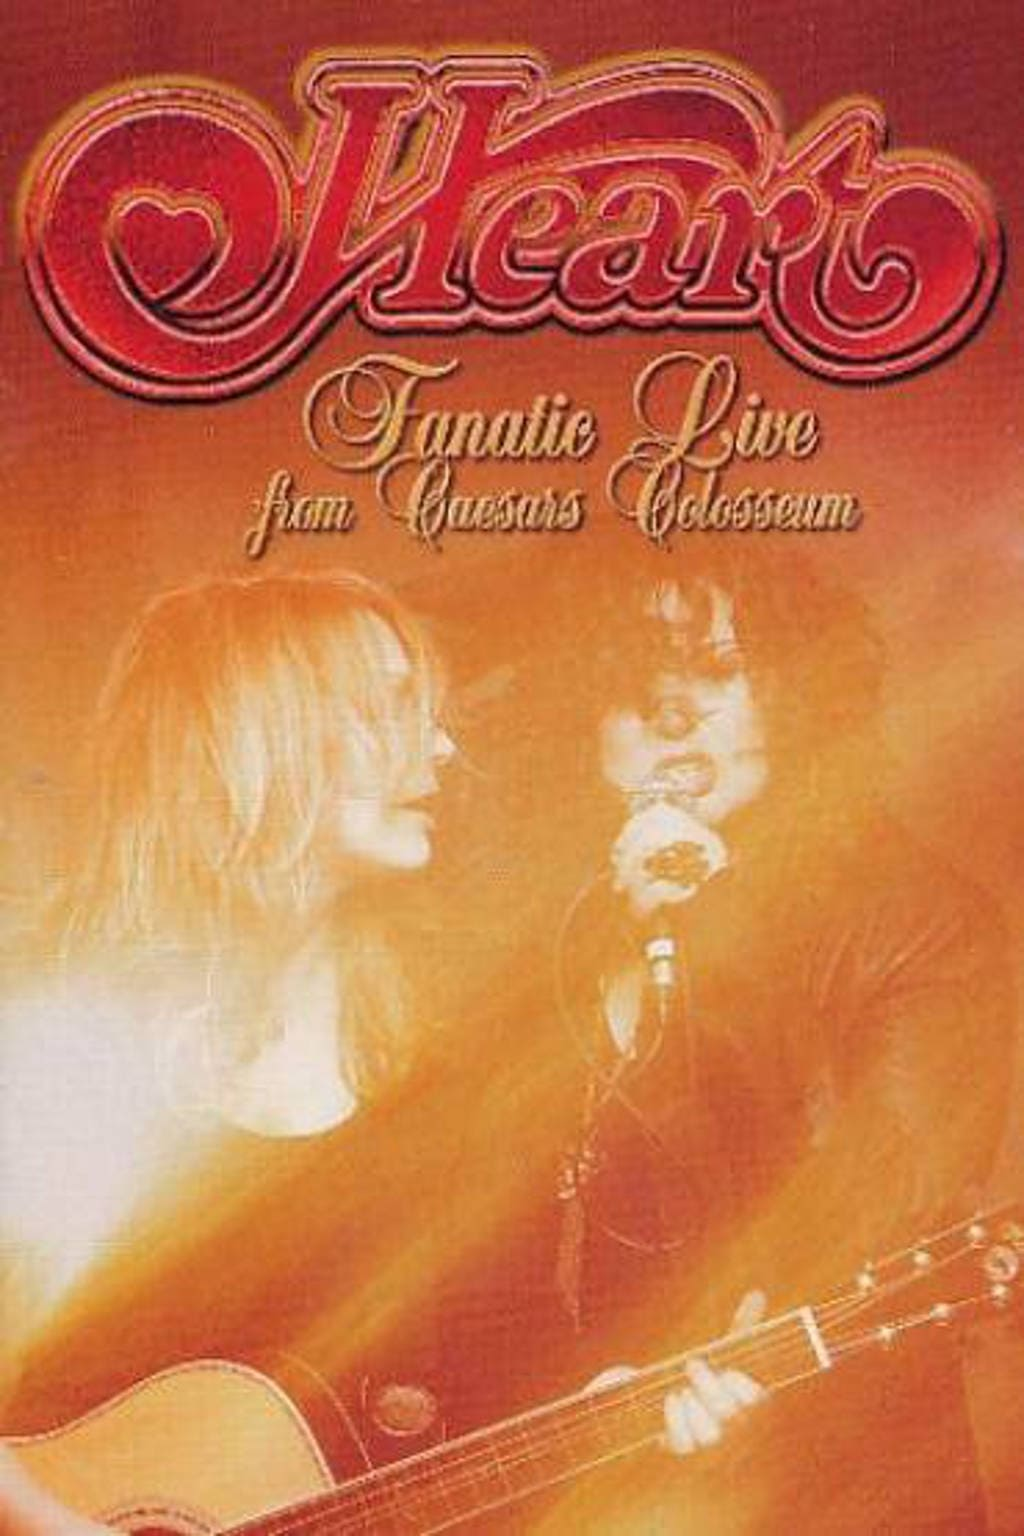 Heart: Fanatic Live from Caesars Colosseum (2012)